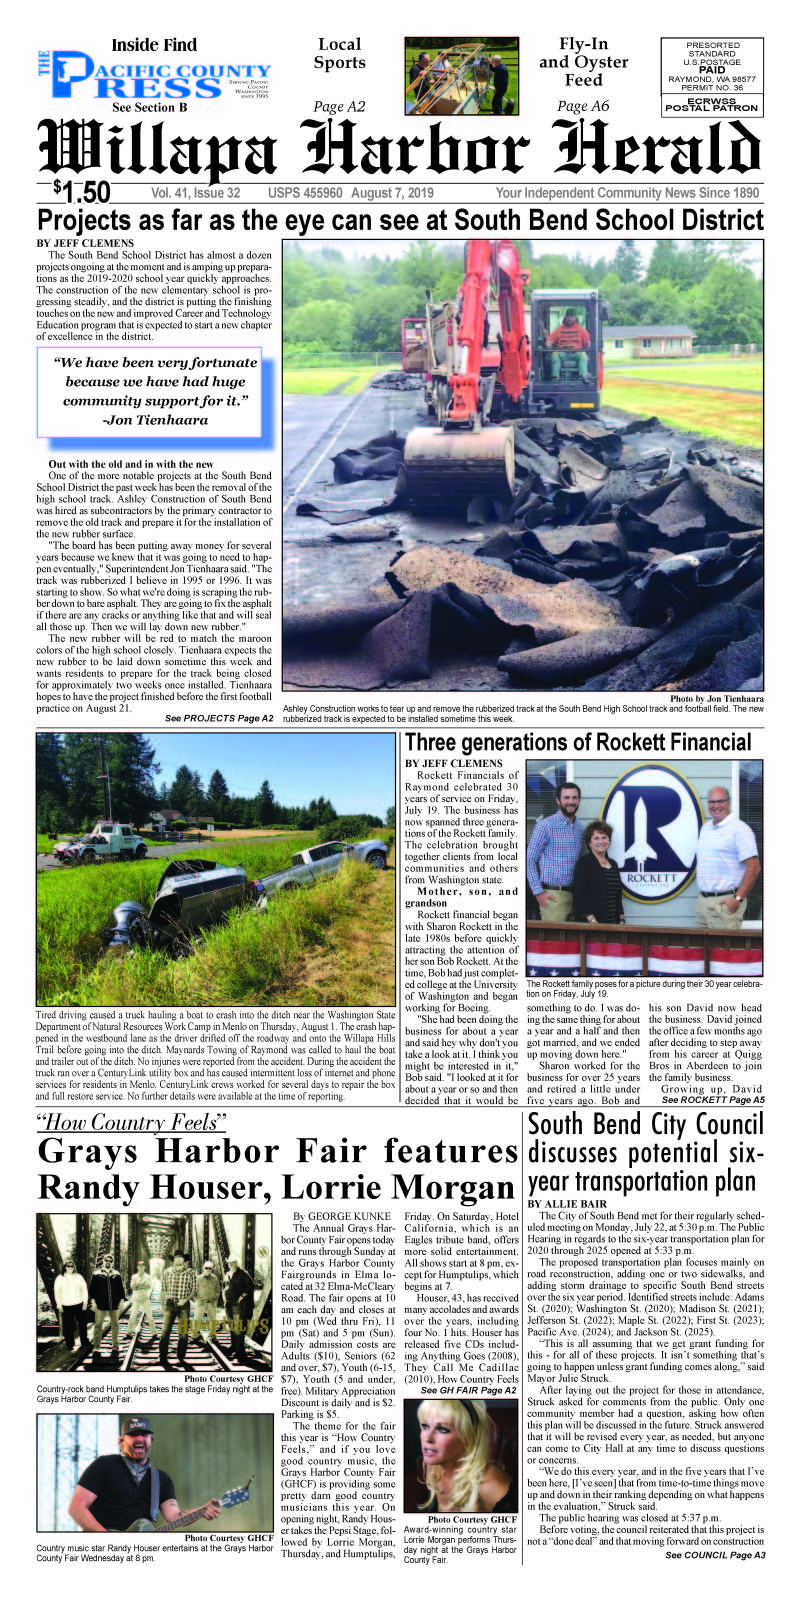 August 7, 2019 Willapa Harbor Herald